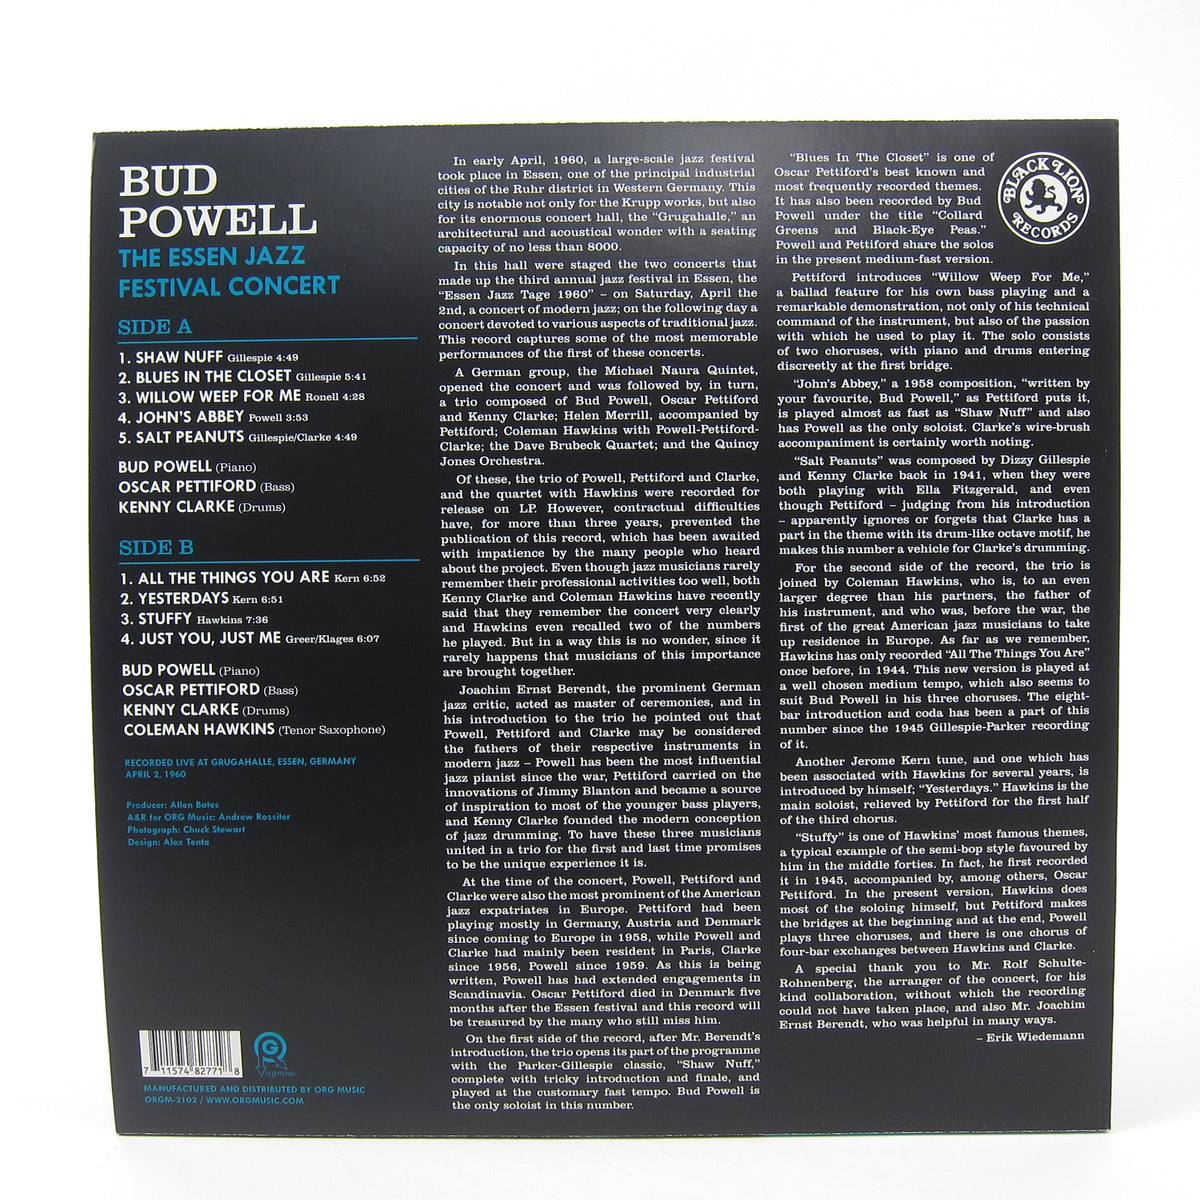 Bud Powell: The Essen Jazz Festival Concert (Indie Exclusive Colored Vinyl) Vinyl LP